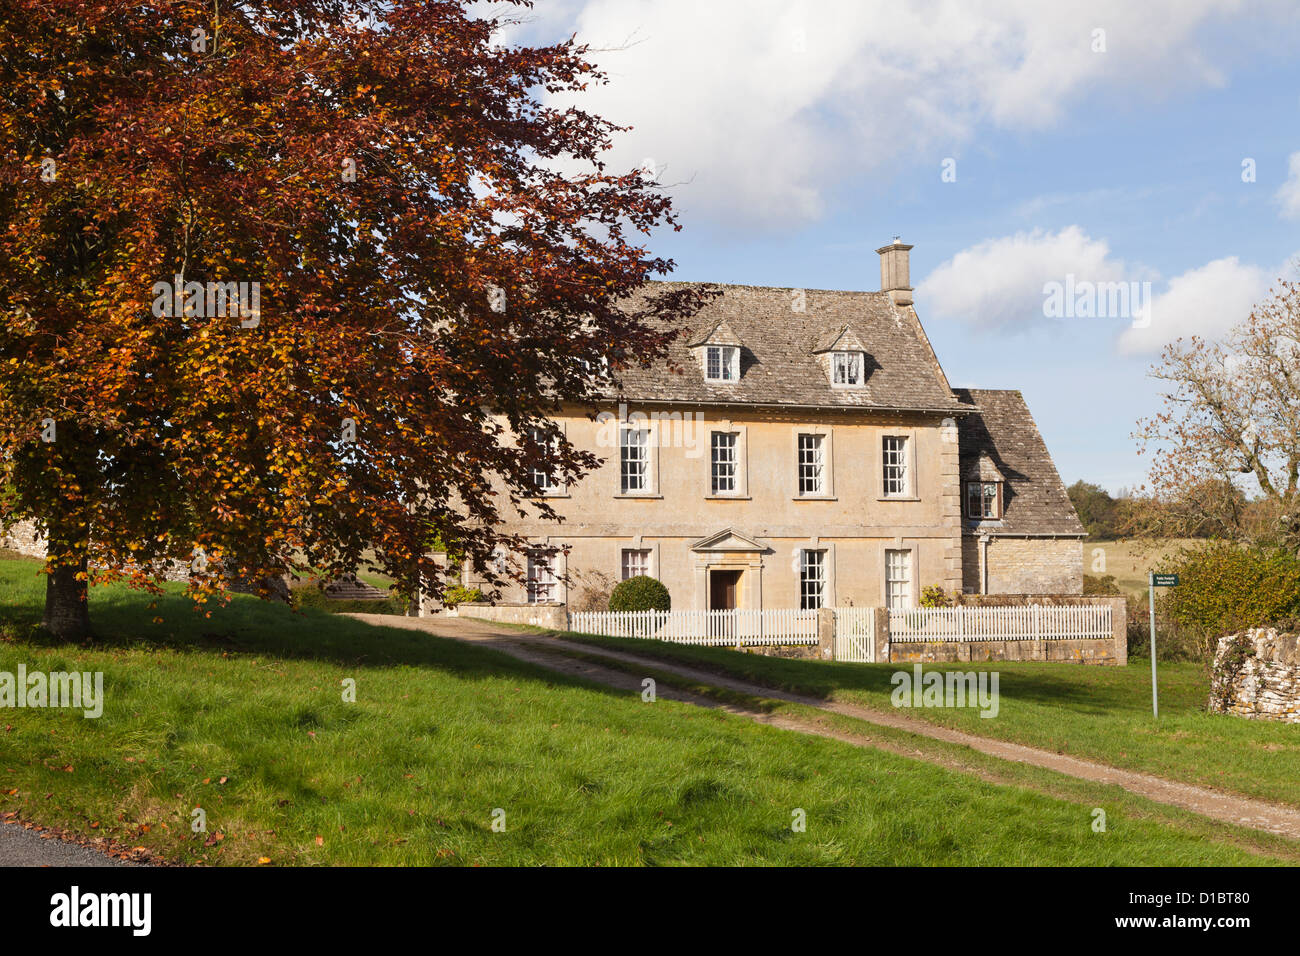 Autumn in the Cotswold village of Caudle Green, Gloucestershire, UK - Stock Image